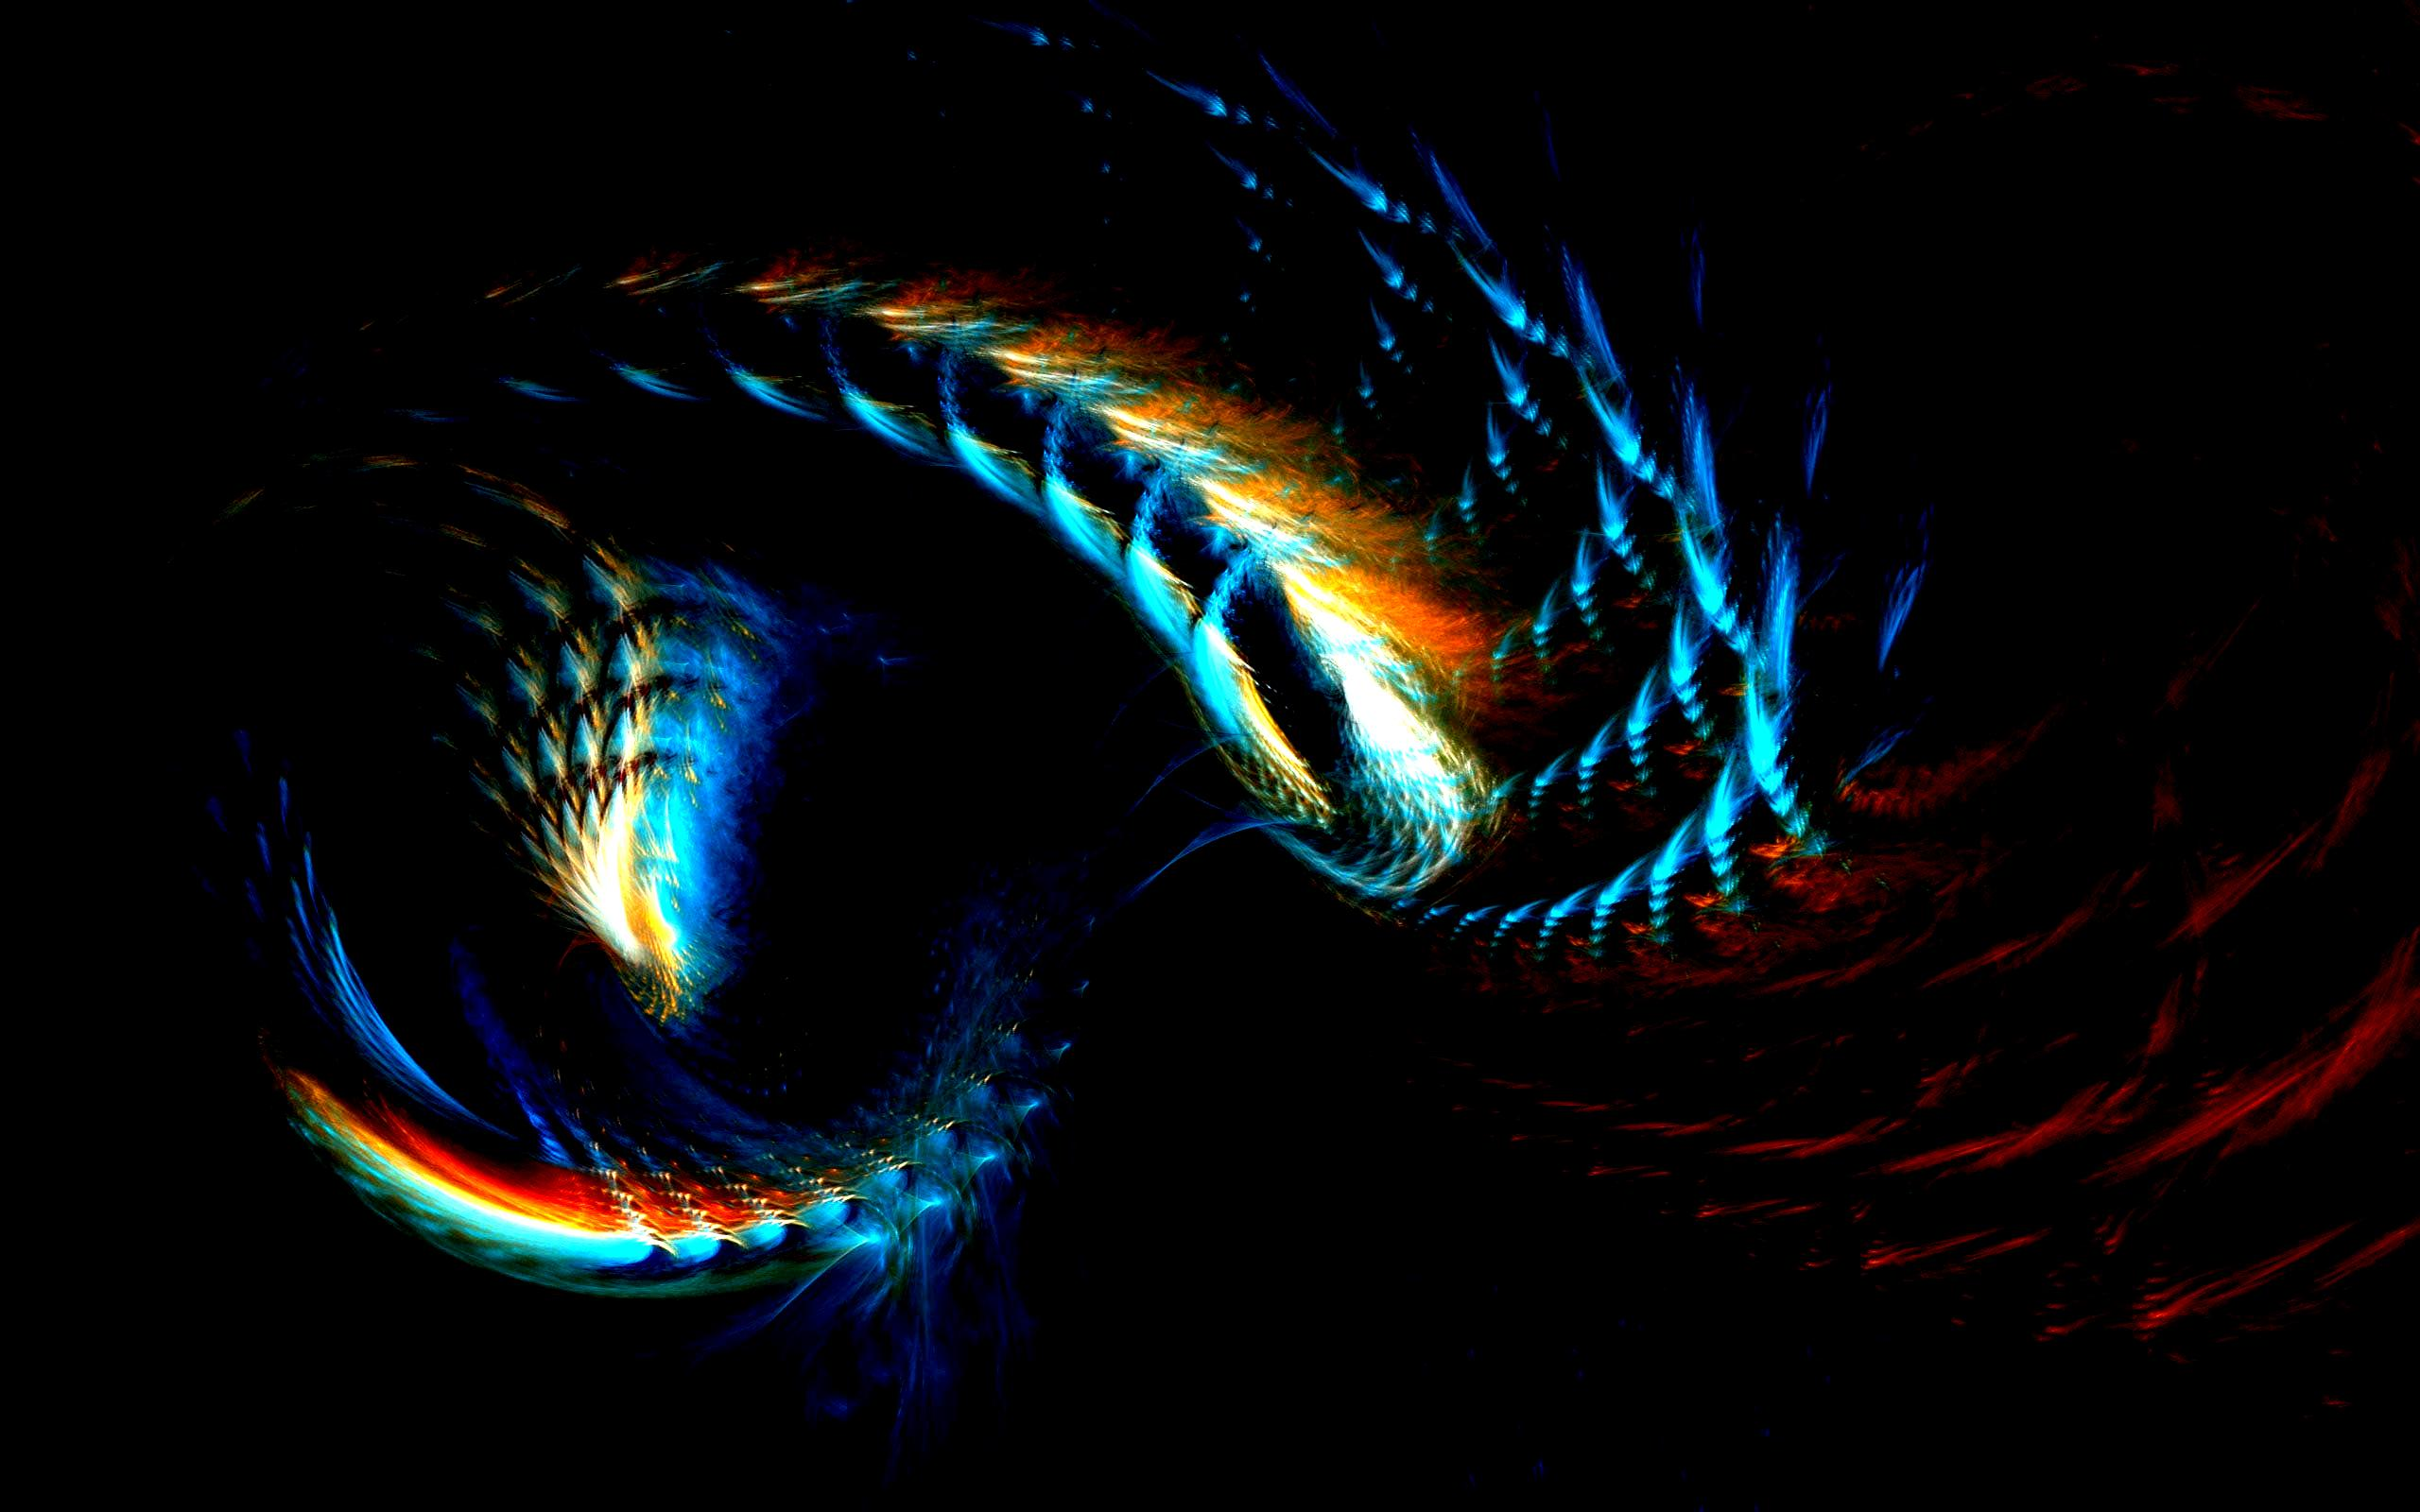 30 wallpapers perfect for AMOLED screens 2560x1600